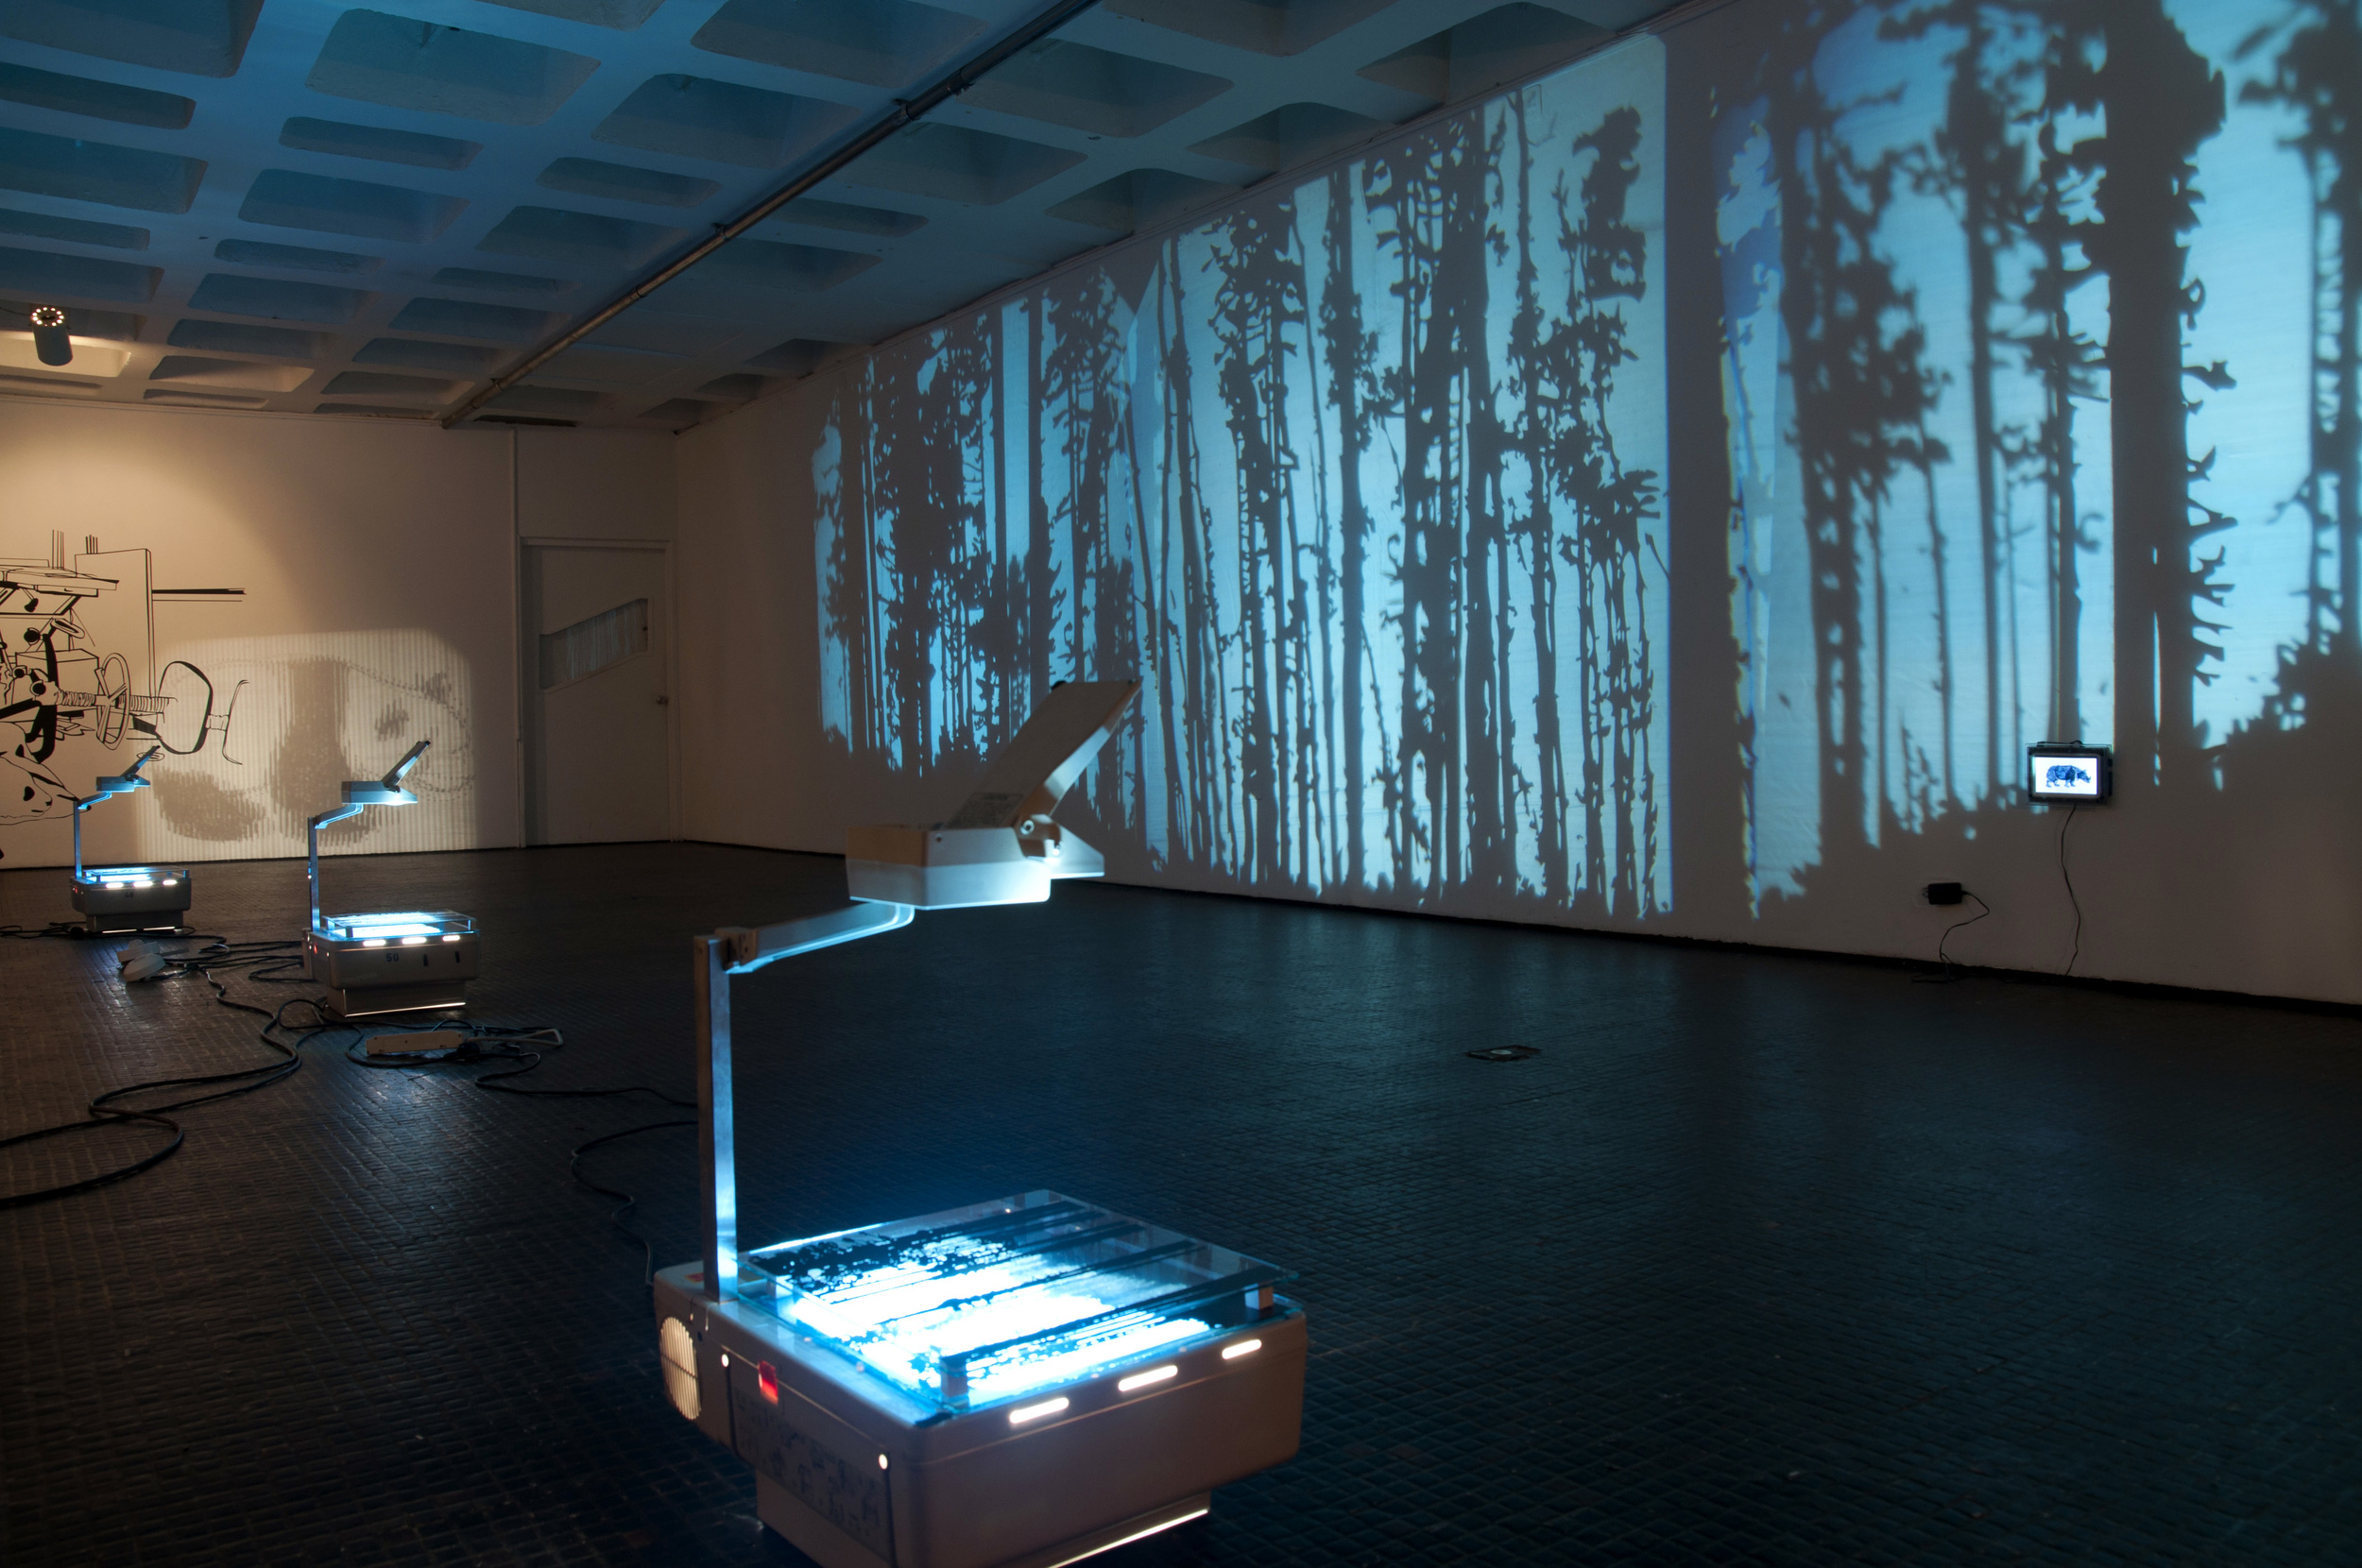 Angelica Teuta © 2010 ,  Far away from here . Installation. Courtesy of the artist.